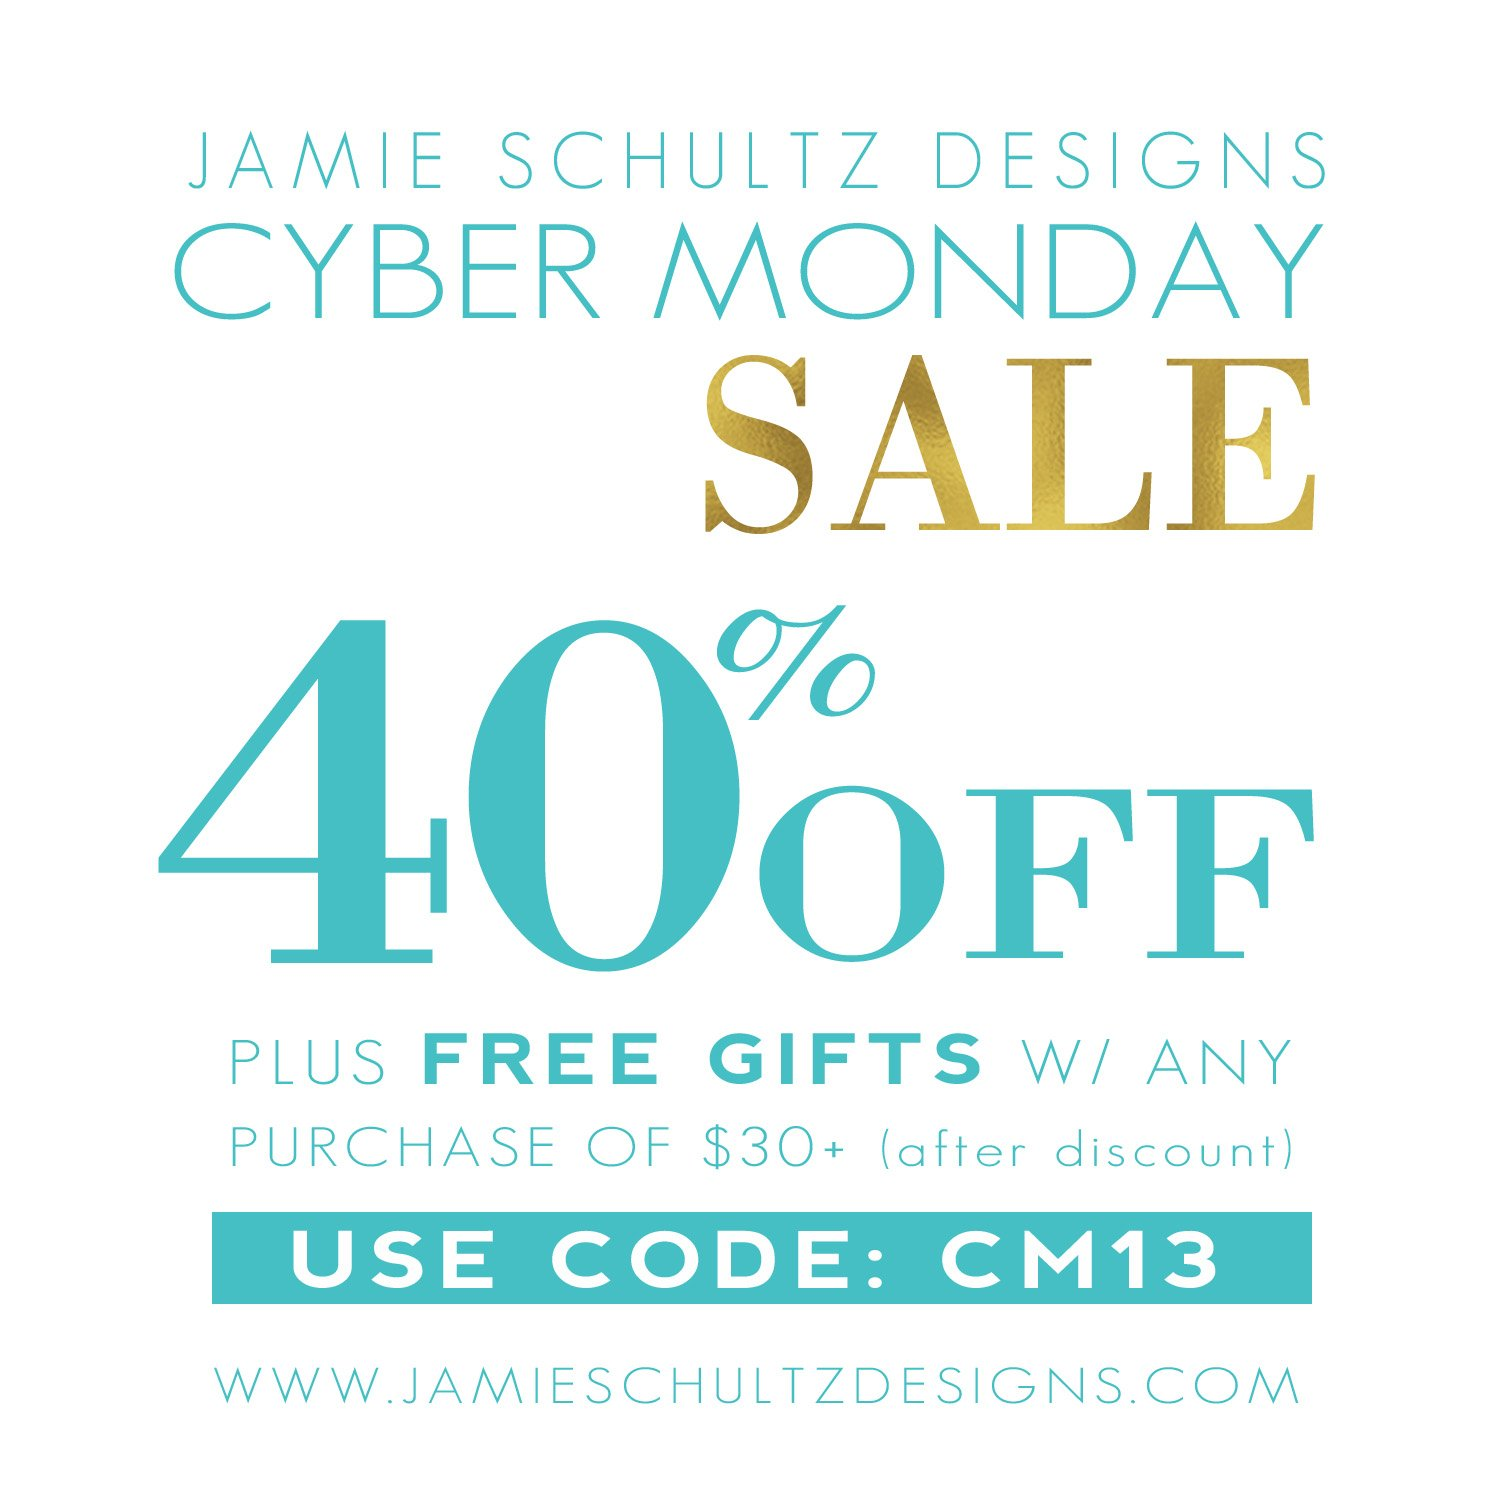 Cyber Monday at Jamie Schultz Designs